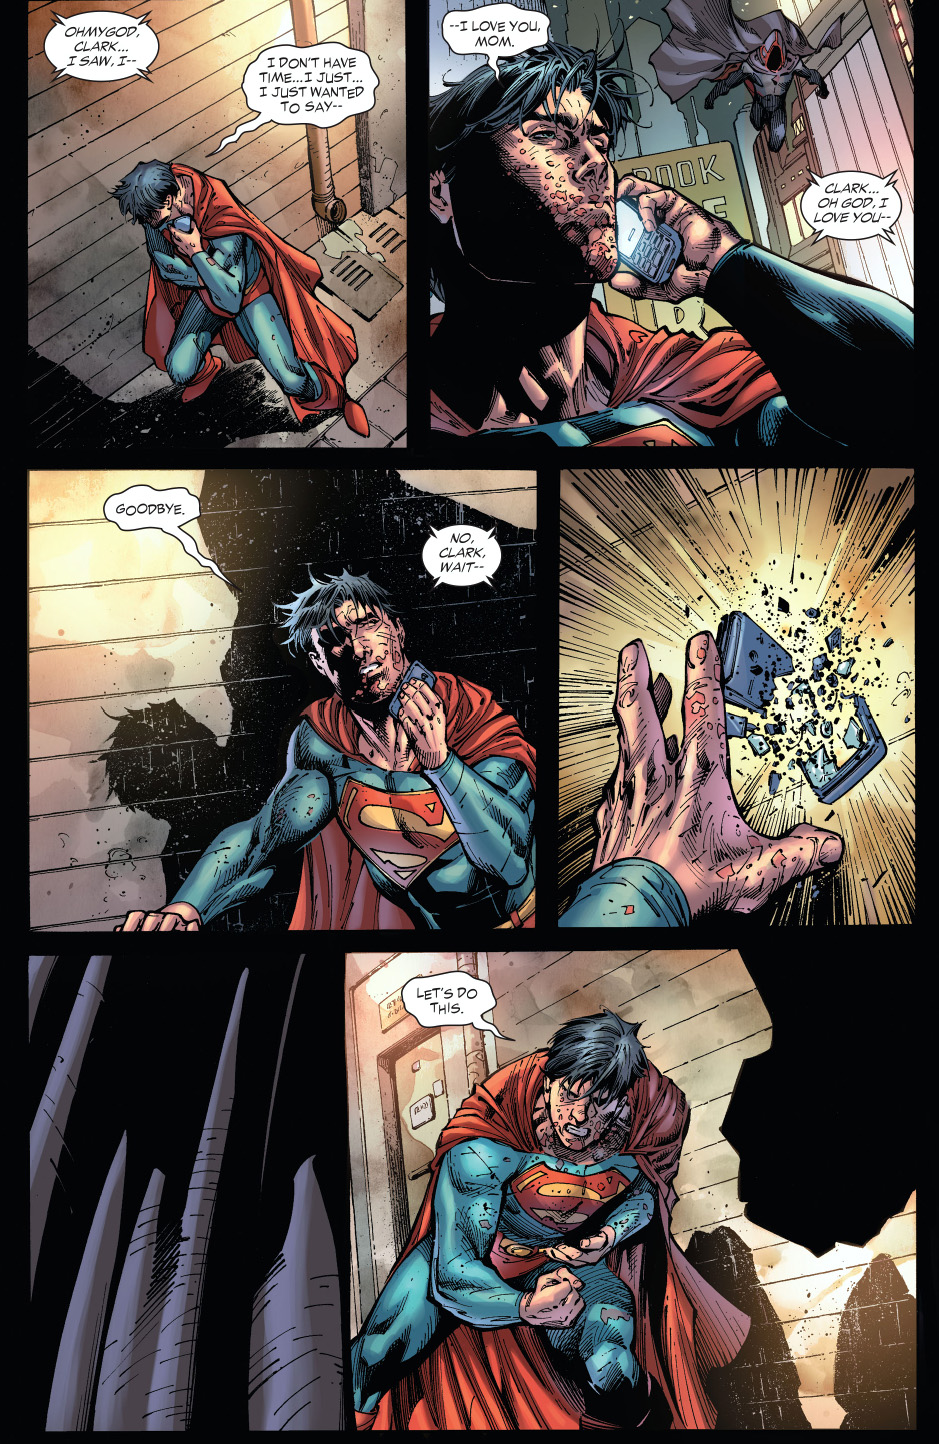 zod tortures superman earth 1 comicnewbies